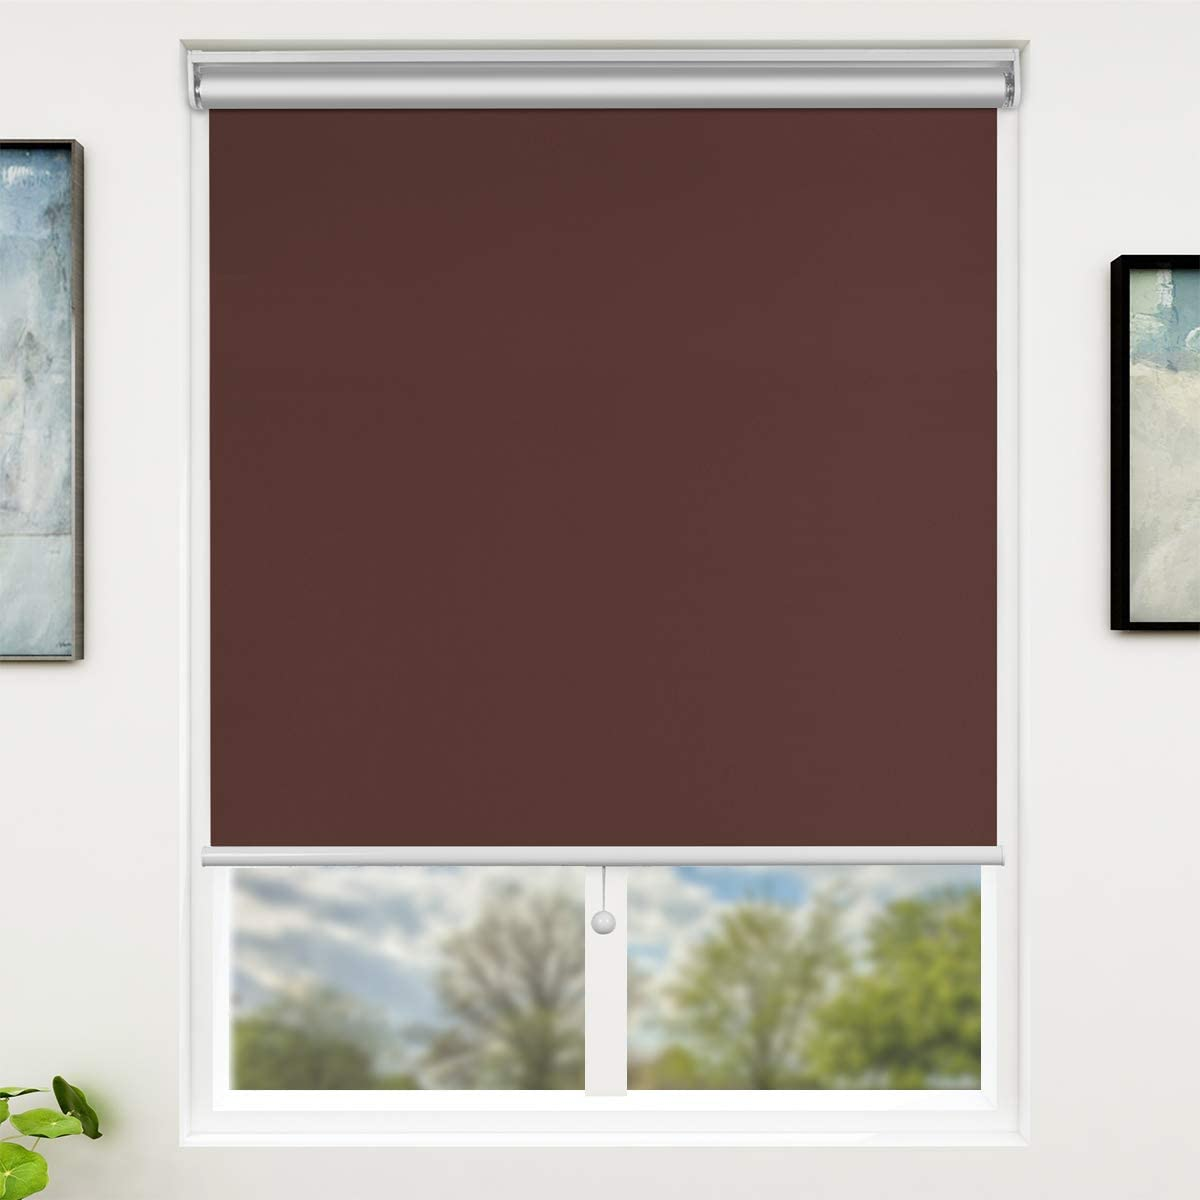 SUNFREE Mocha Blackout Max 43% OFF Window Cordless Blinds Cheap with Shades